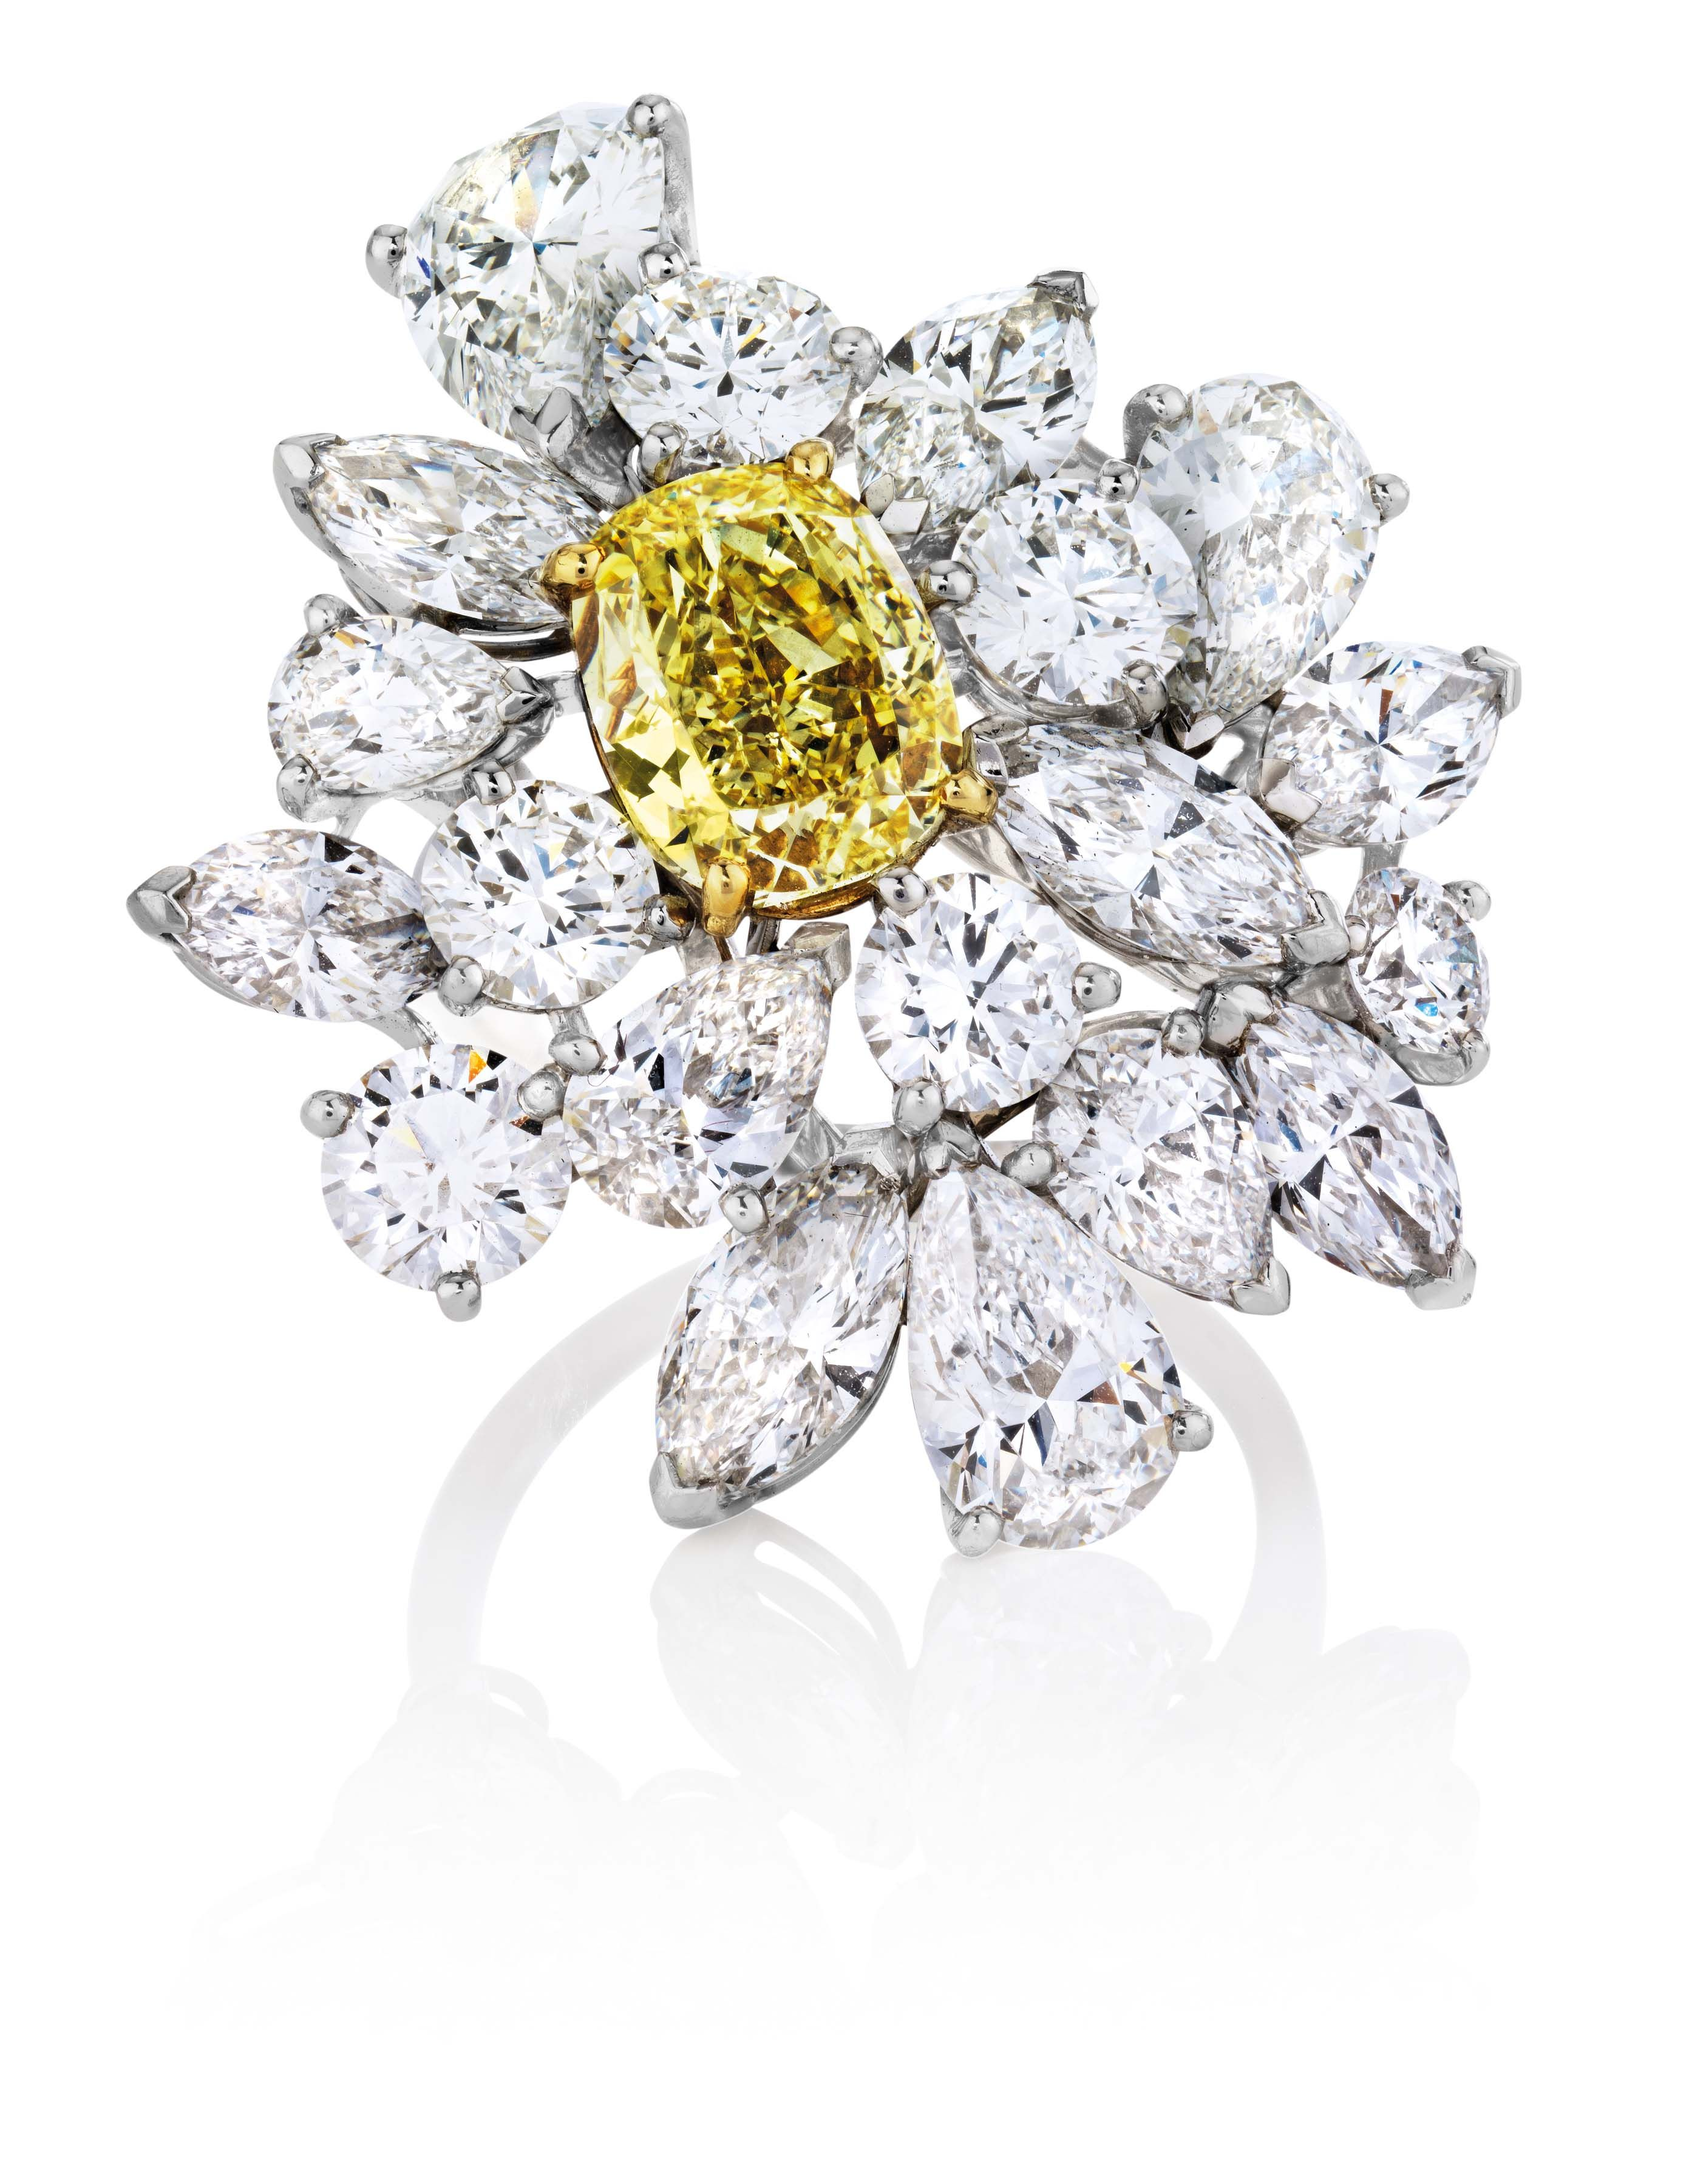 De beers diamonds lights up the world with rare gems and talent for